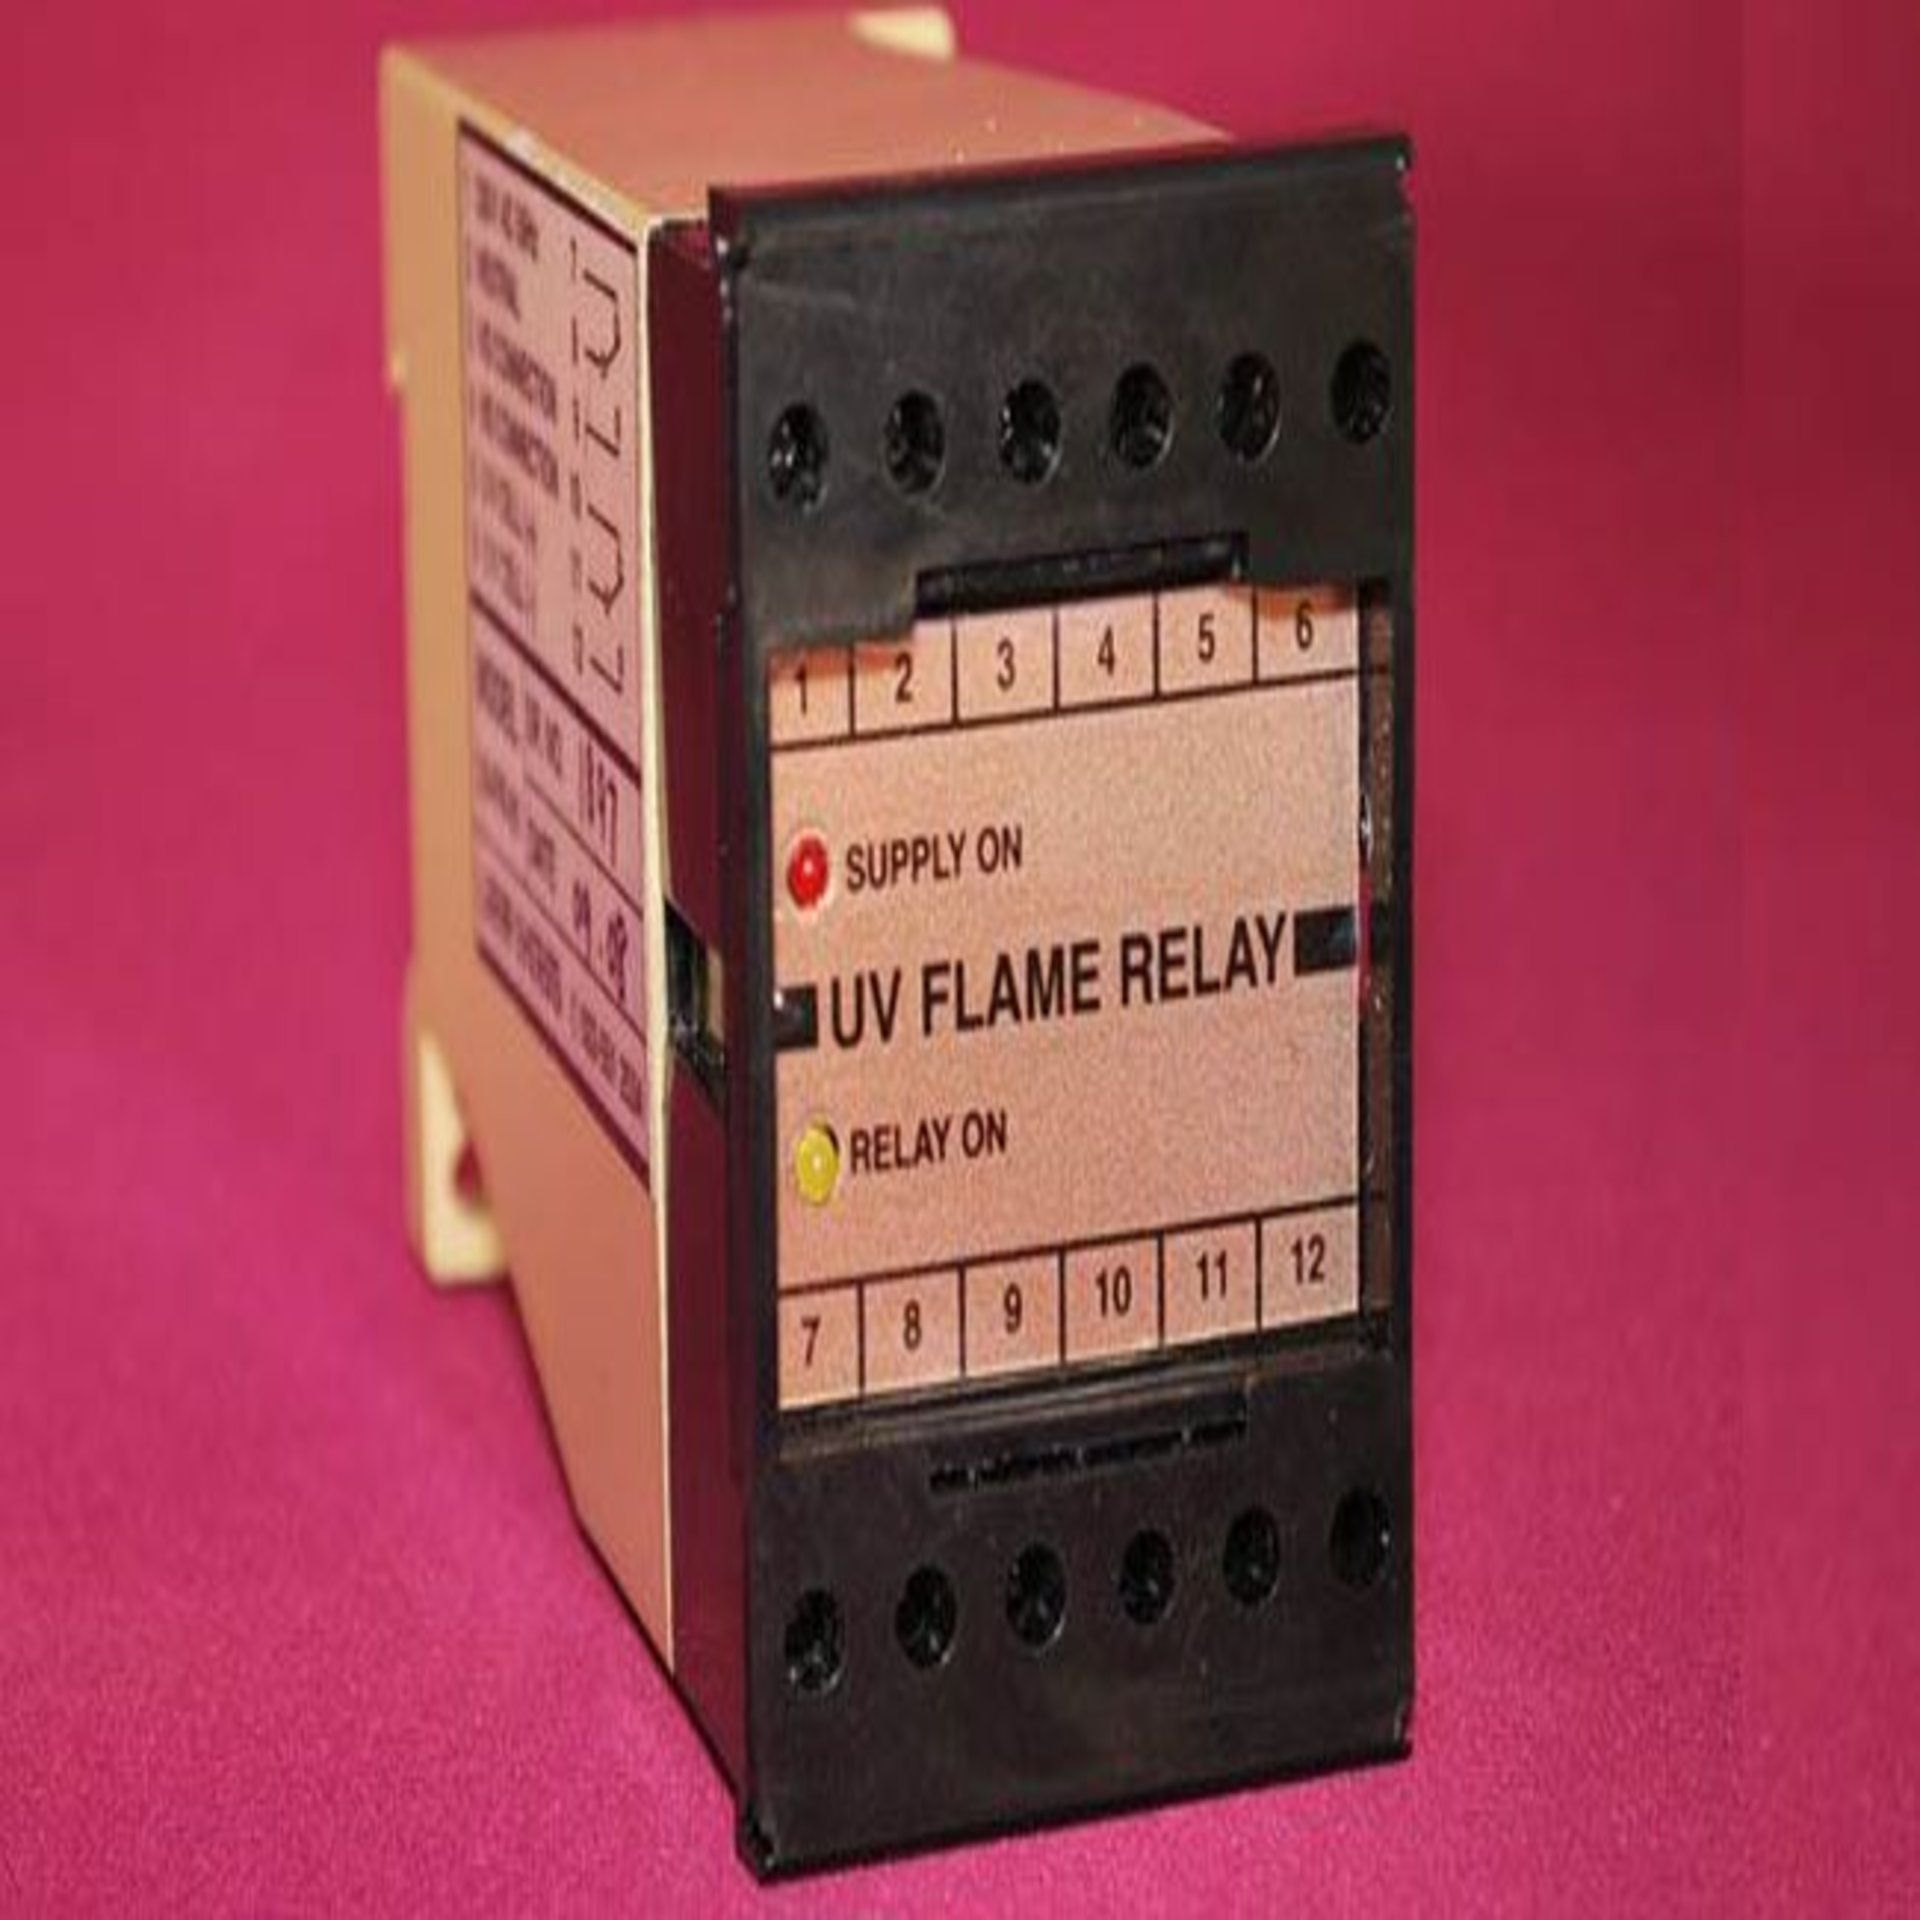 UV flame sensor is used to detect the flame or fire inside the